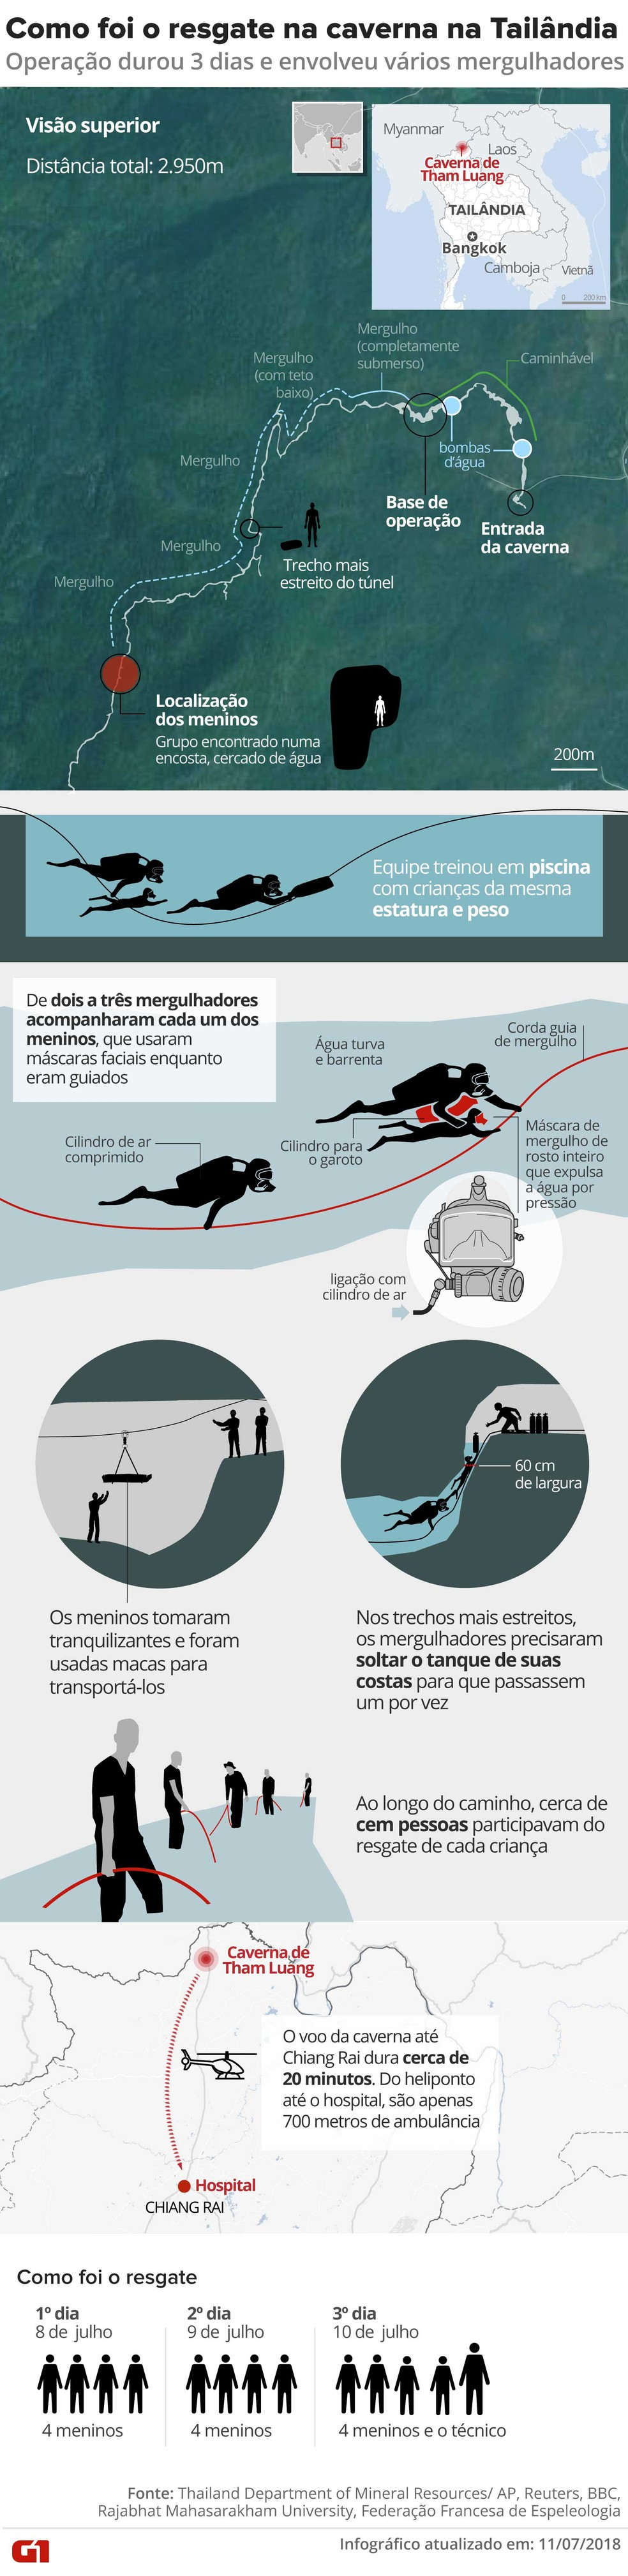 Infographic shows how was the rescue of the boys trapped in the cave in Thailand - Photo: Infographics: Karina Almeida, Juliane Monteiro, Betta Jaworski, Alexandre Mauro / G1